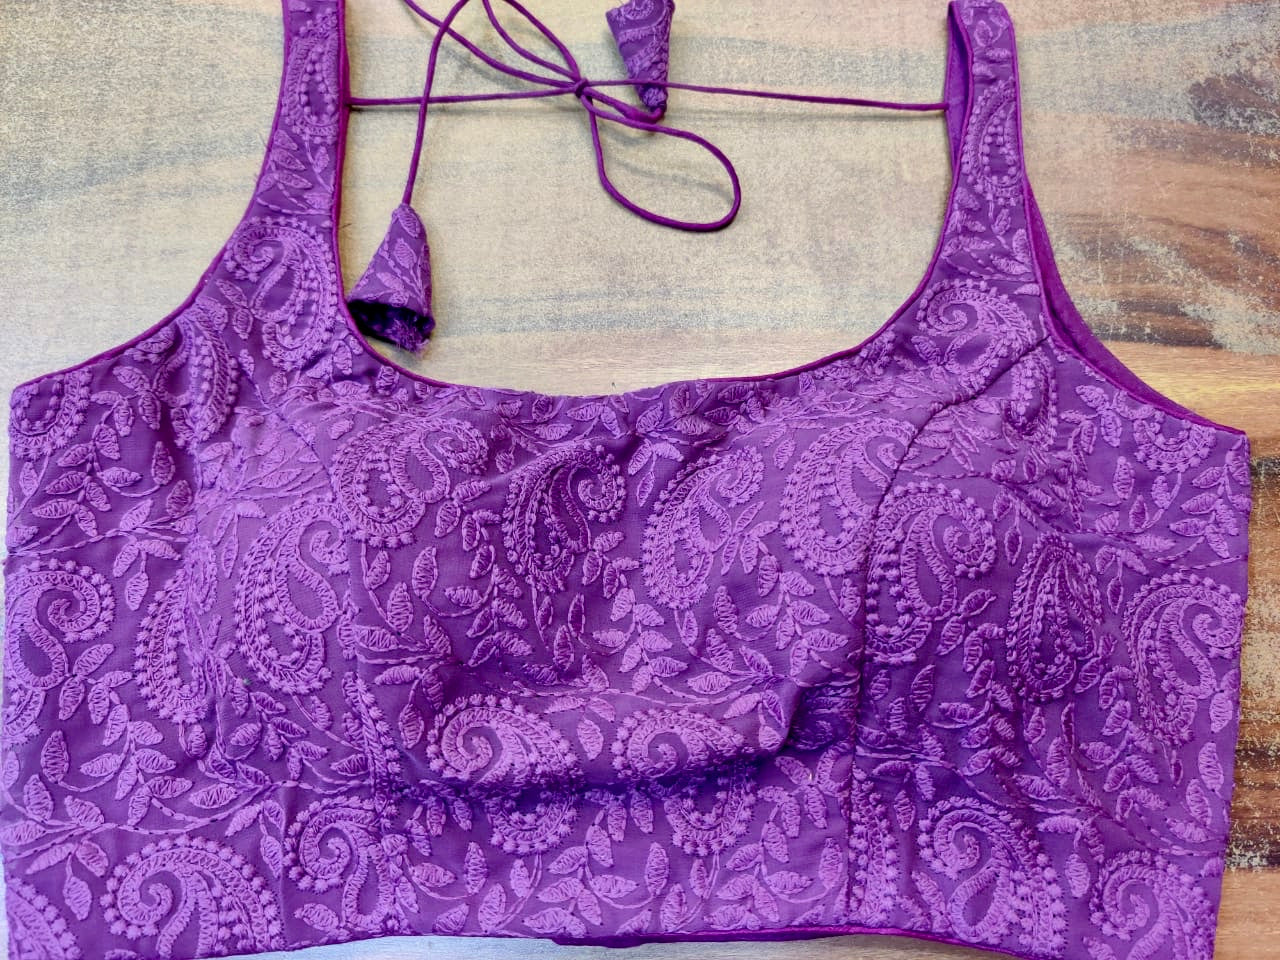 Buy stunning purple embroidered sleeveless saree blouse online in USA. Elevate your ethnic saree style with a tasteful collection of designer saree blouses, embroidered sari blouses, Banarasi blouses, silk saree blouses from Pure Elegance Indian clothing store in USA.-front